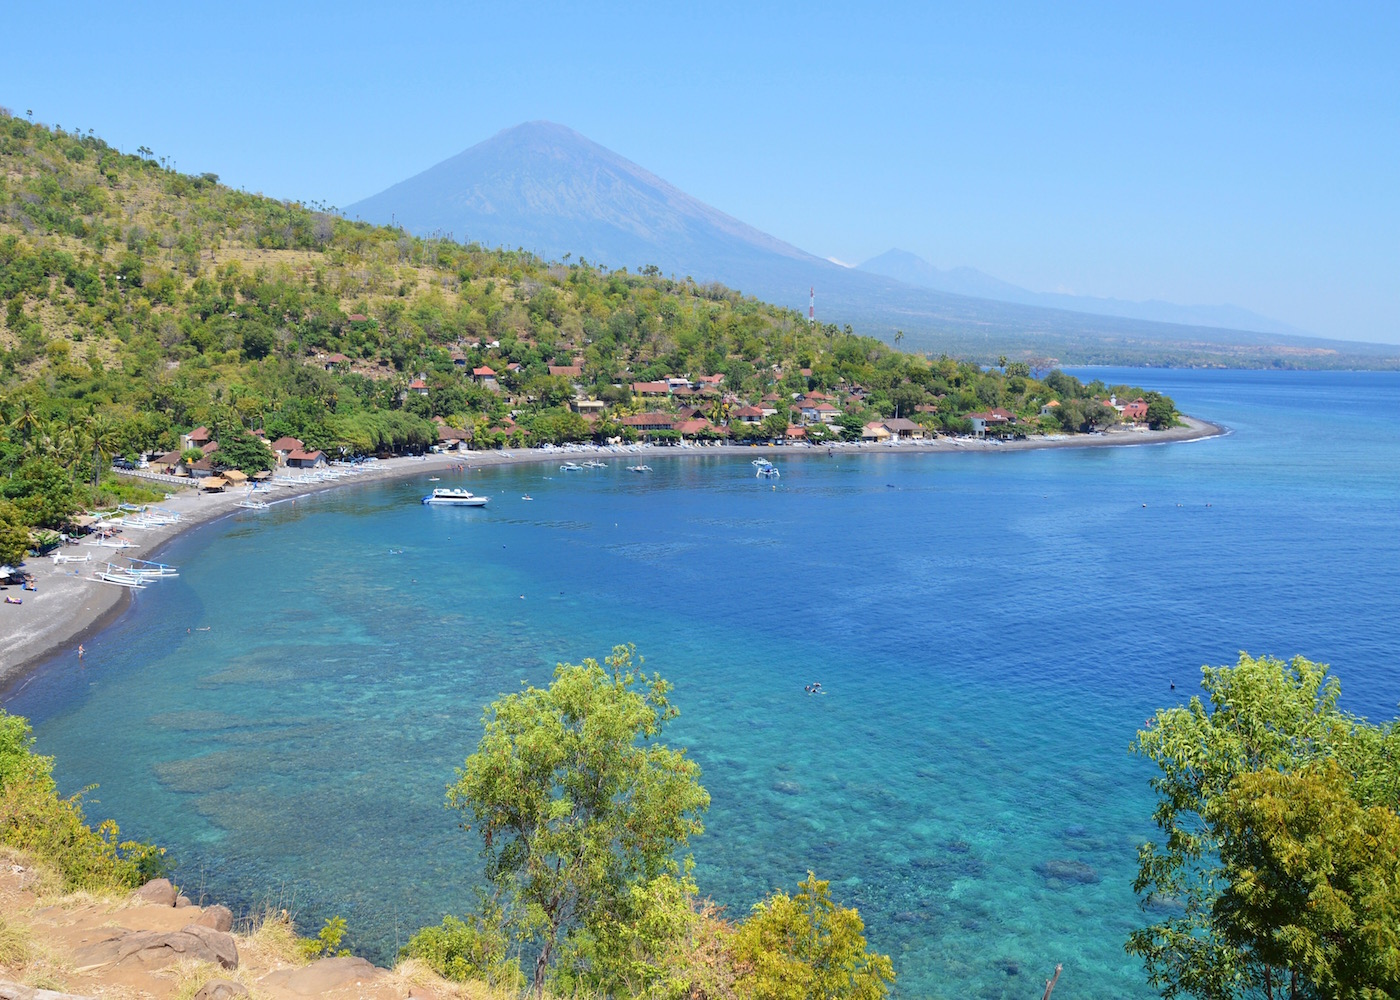 View of Amed Beach with Mount Agung in the background of North Bali, Indonesia